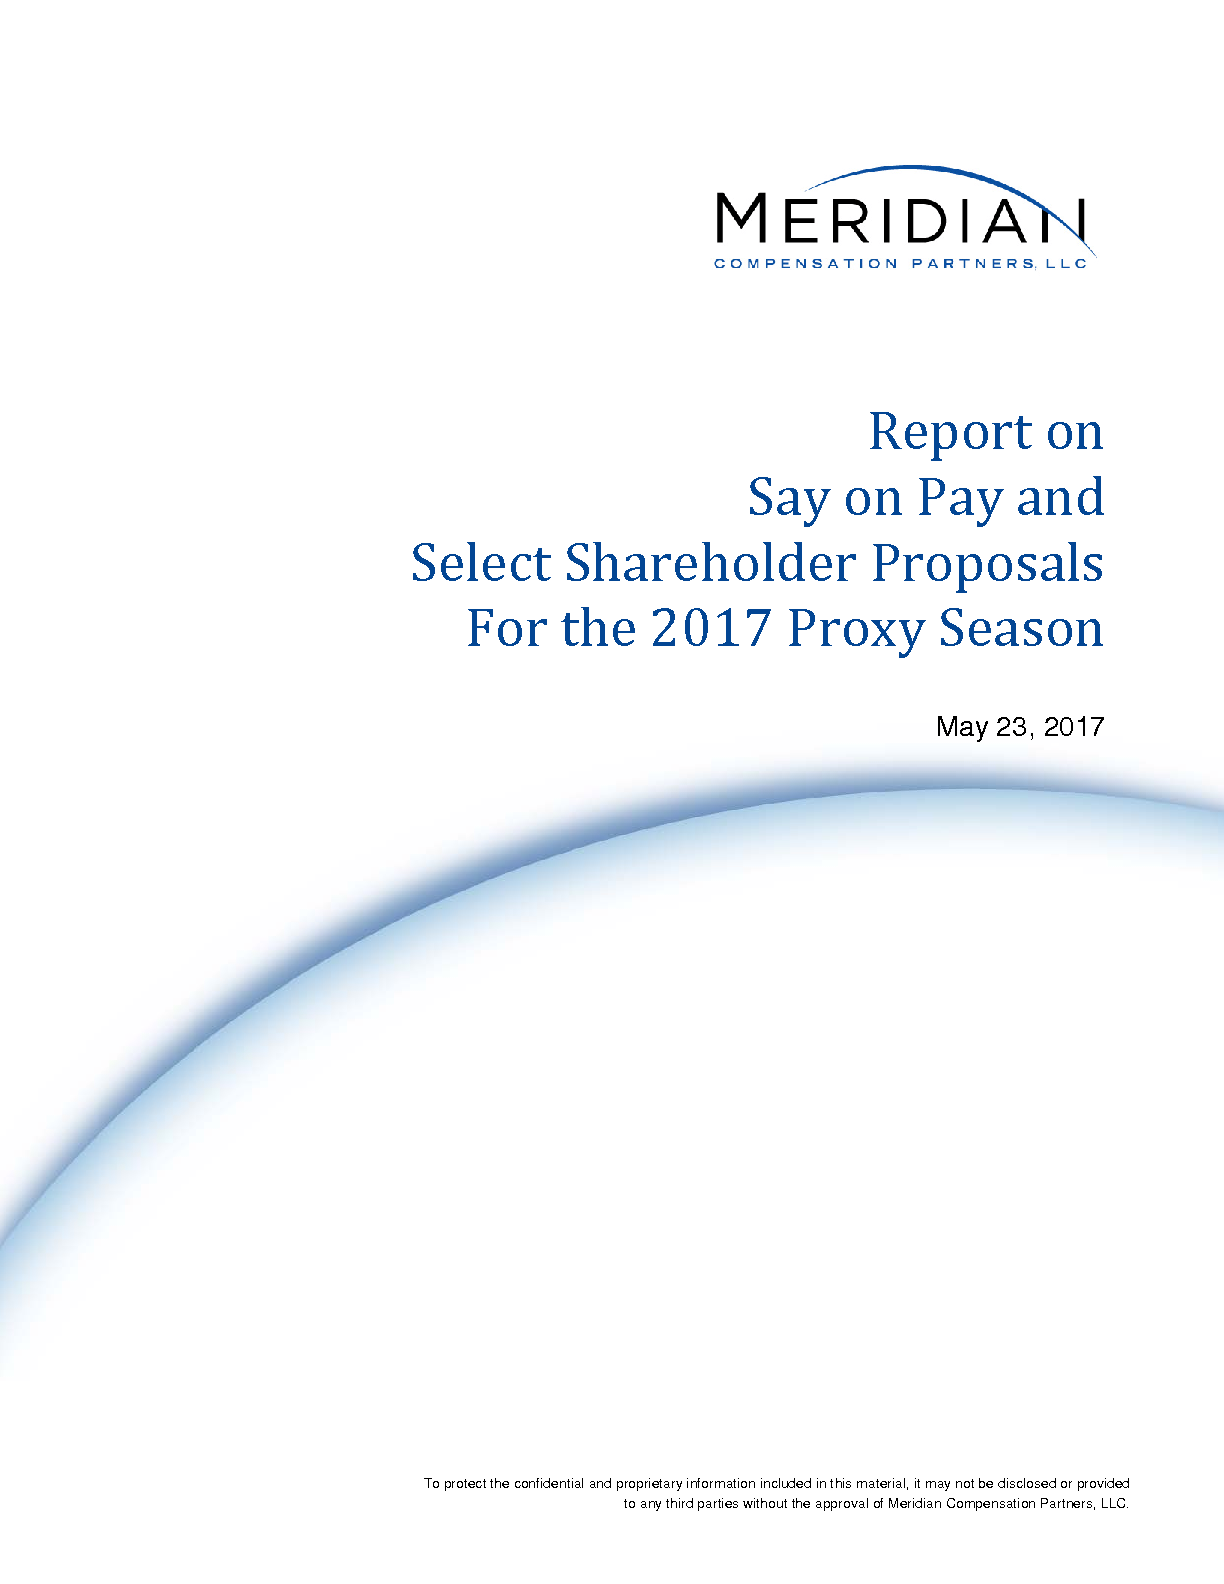 Report on Say on Pay and Select Shareholder Proposals for the 2017 Proxy Season (PDF)